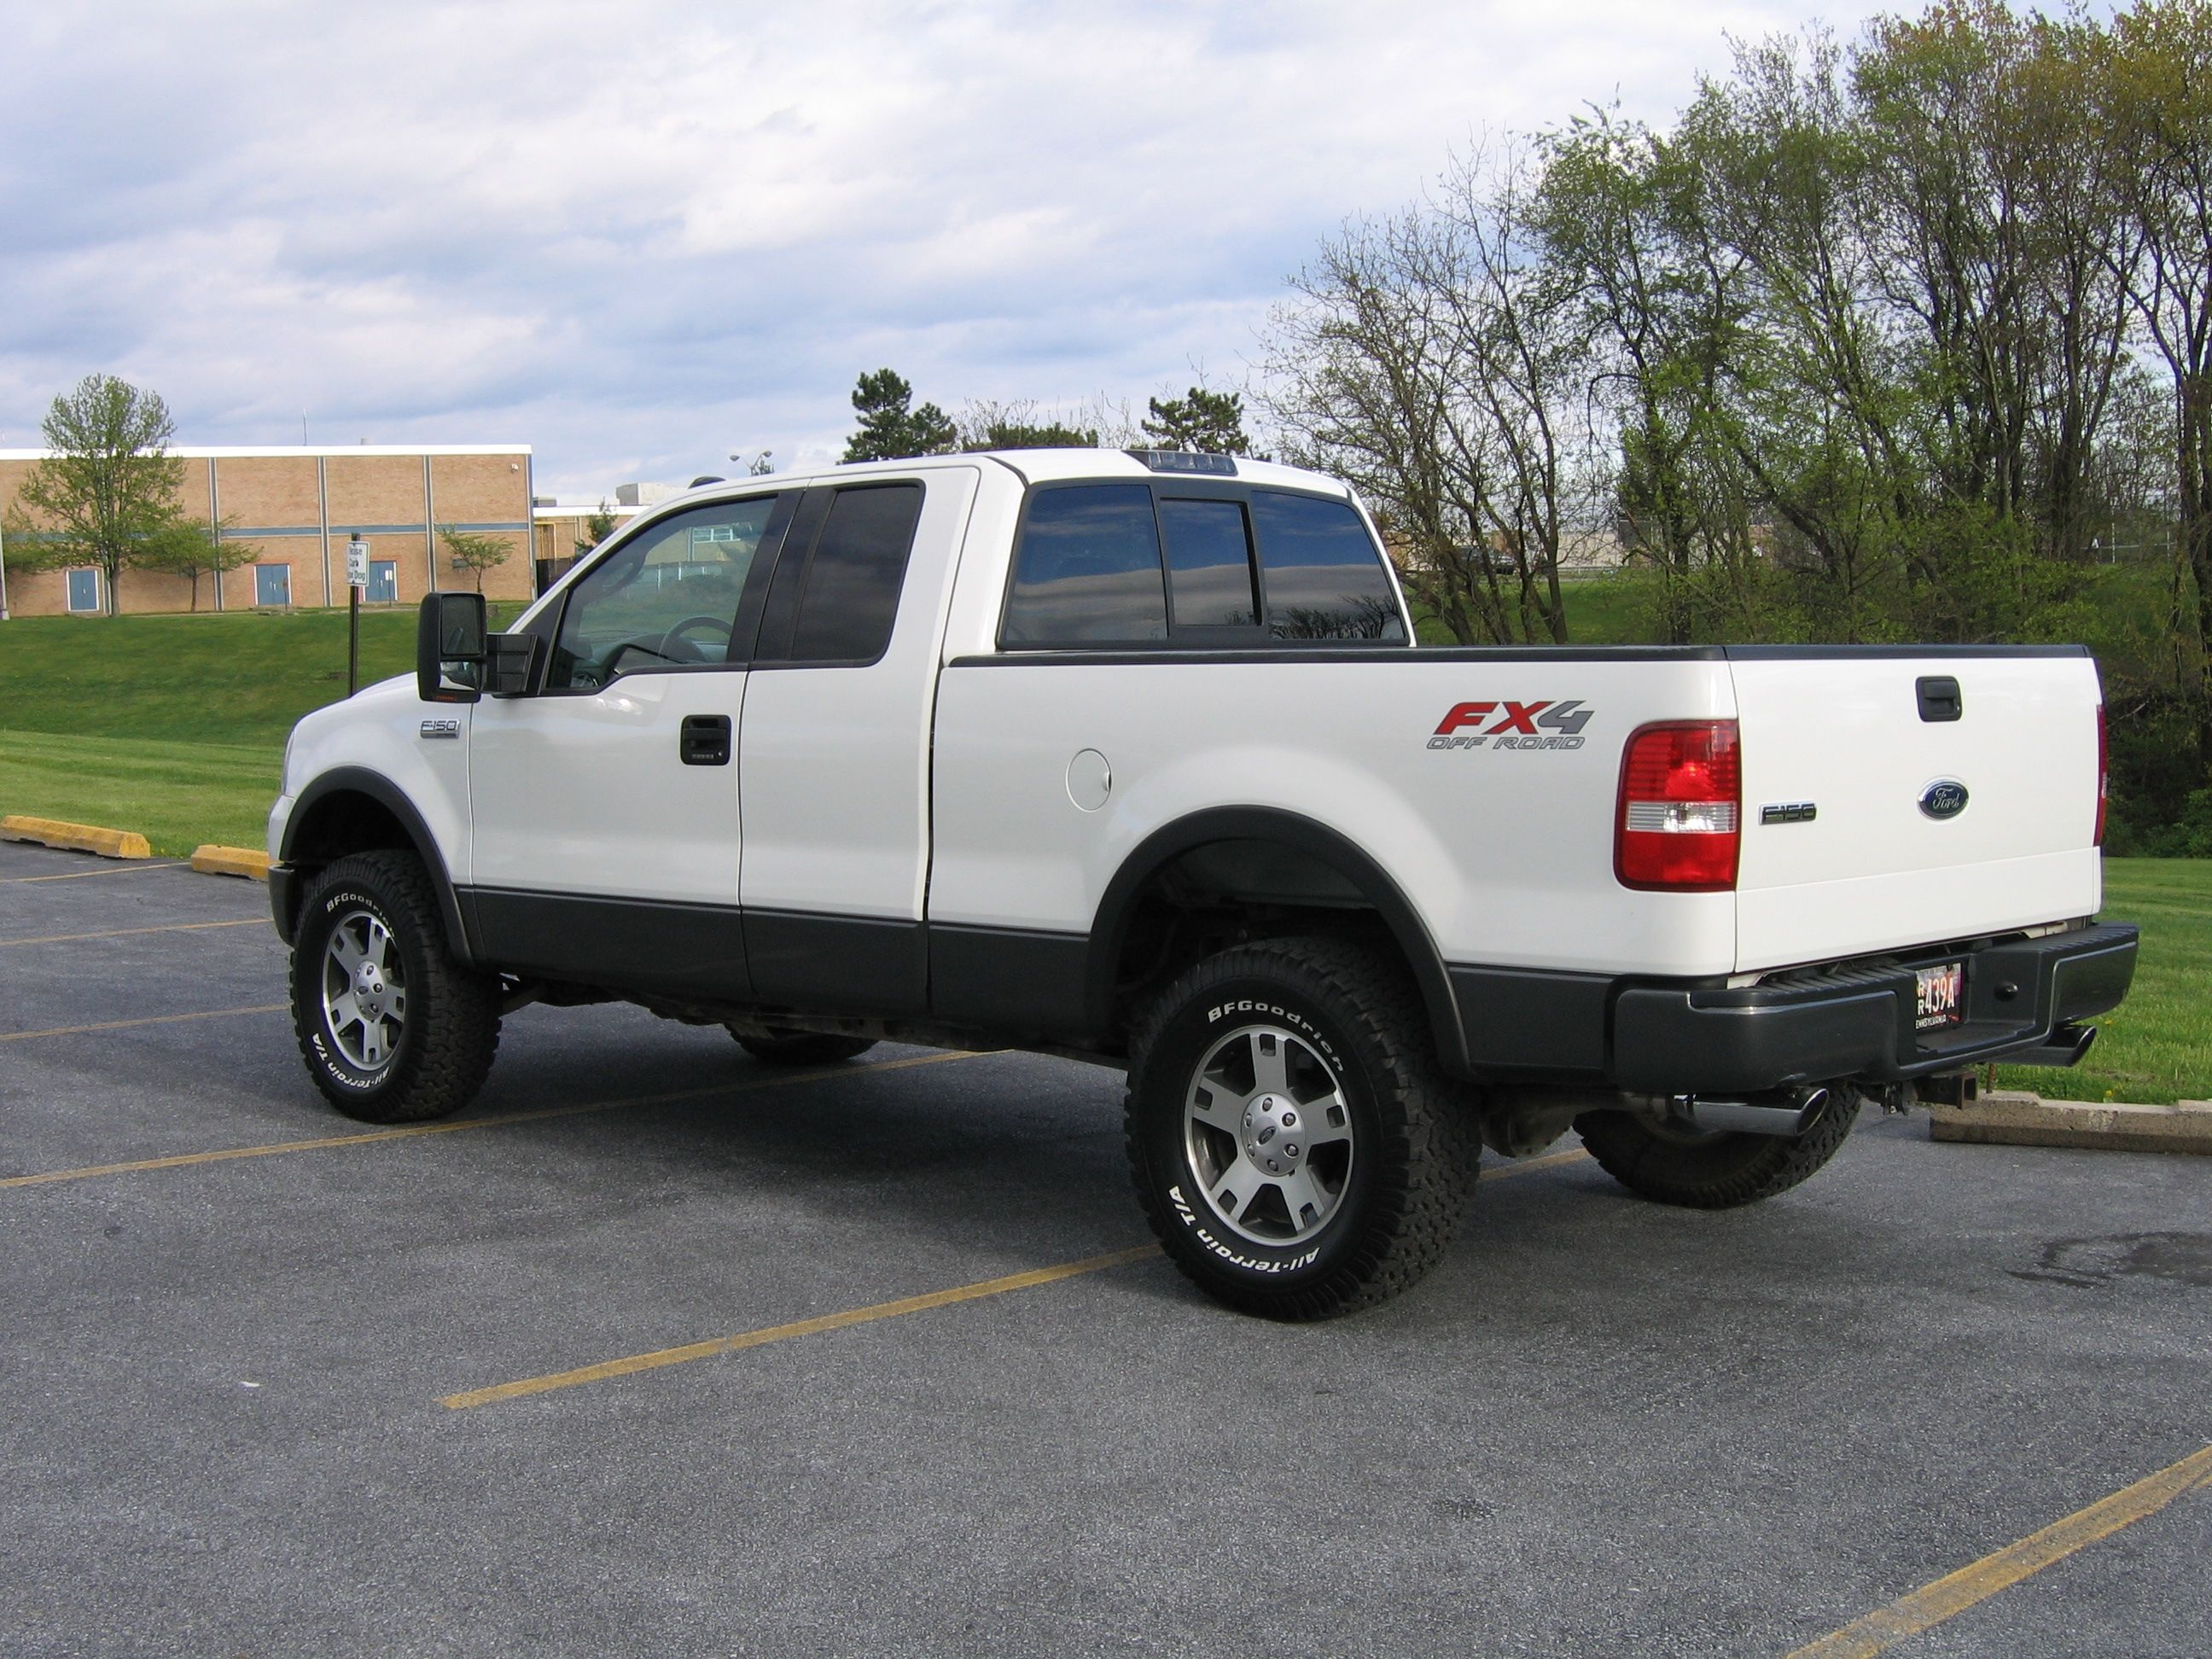 aeb2204aa17377195867380586caec26 Cool Review About 2004 ford F150 Extended Cab with Captivating Gallery Cars Review